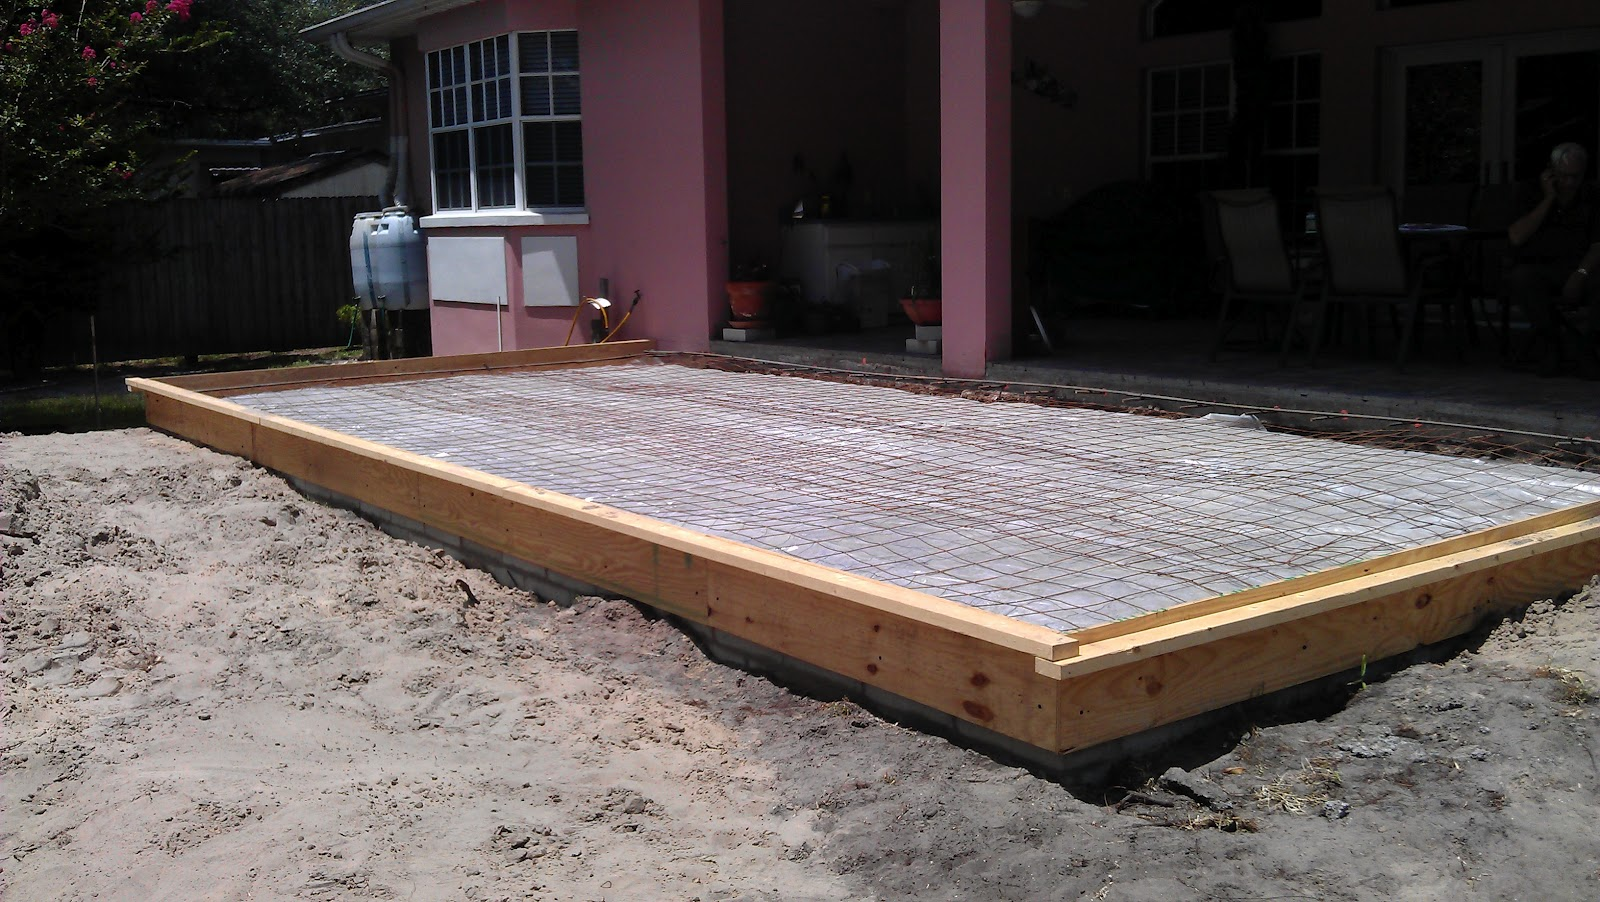 New Patio Extension   Overlay/Thin Pavers   Temple Terrace, FL